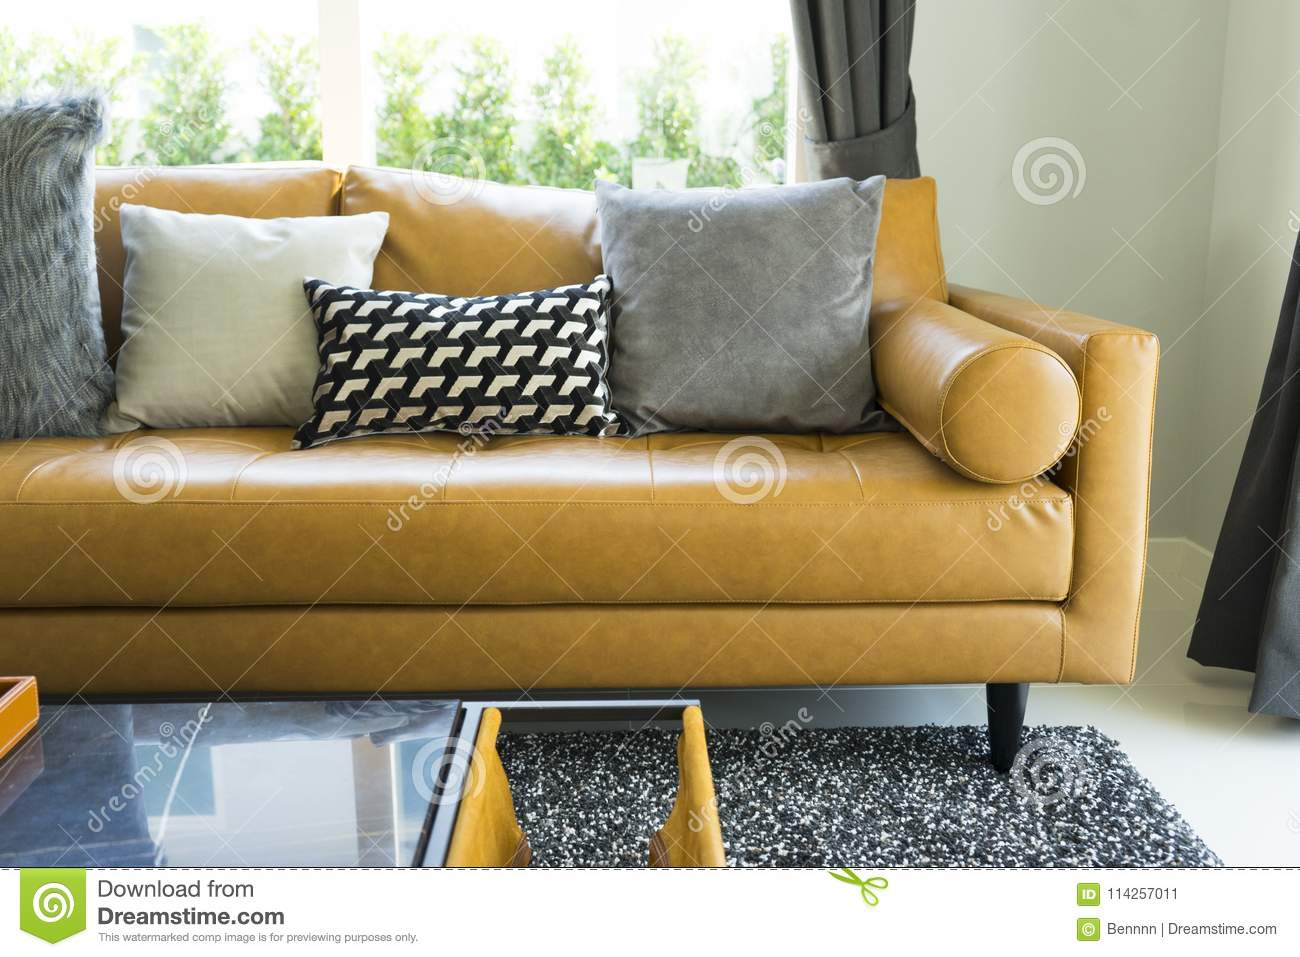 Decorative Pillow On Leather Sofa In Living Room Stock Image Image Of Comfortable Elegance 114257011